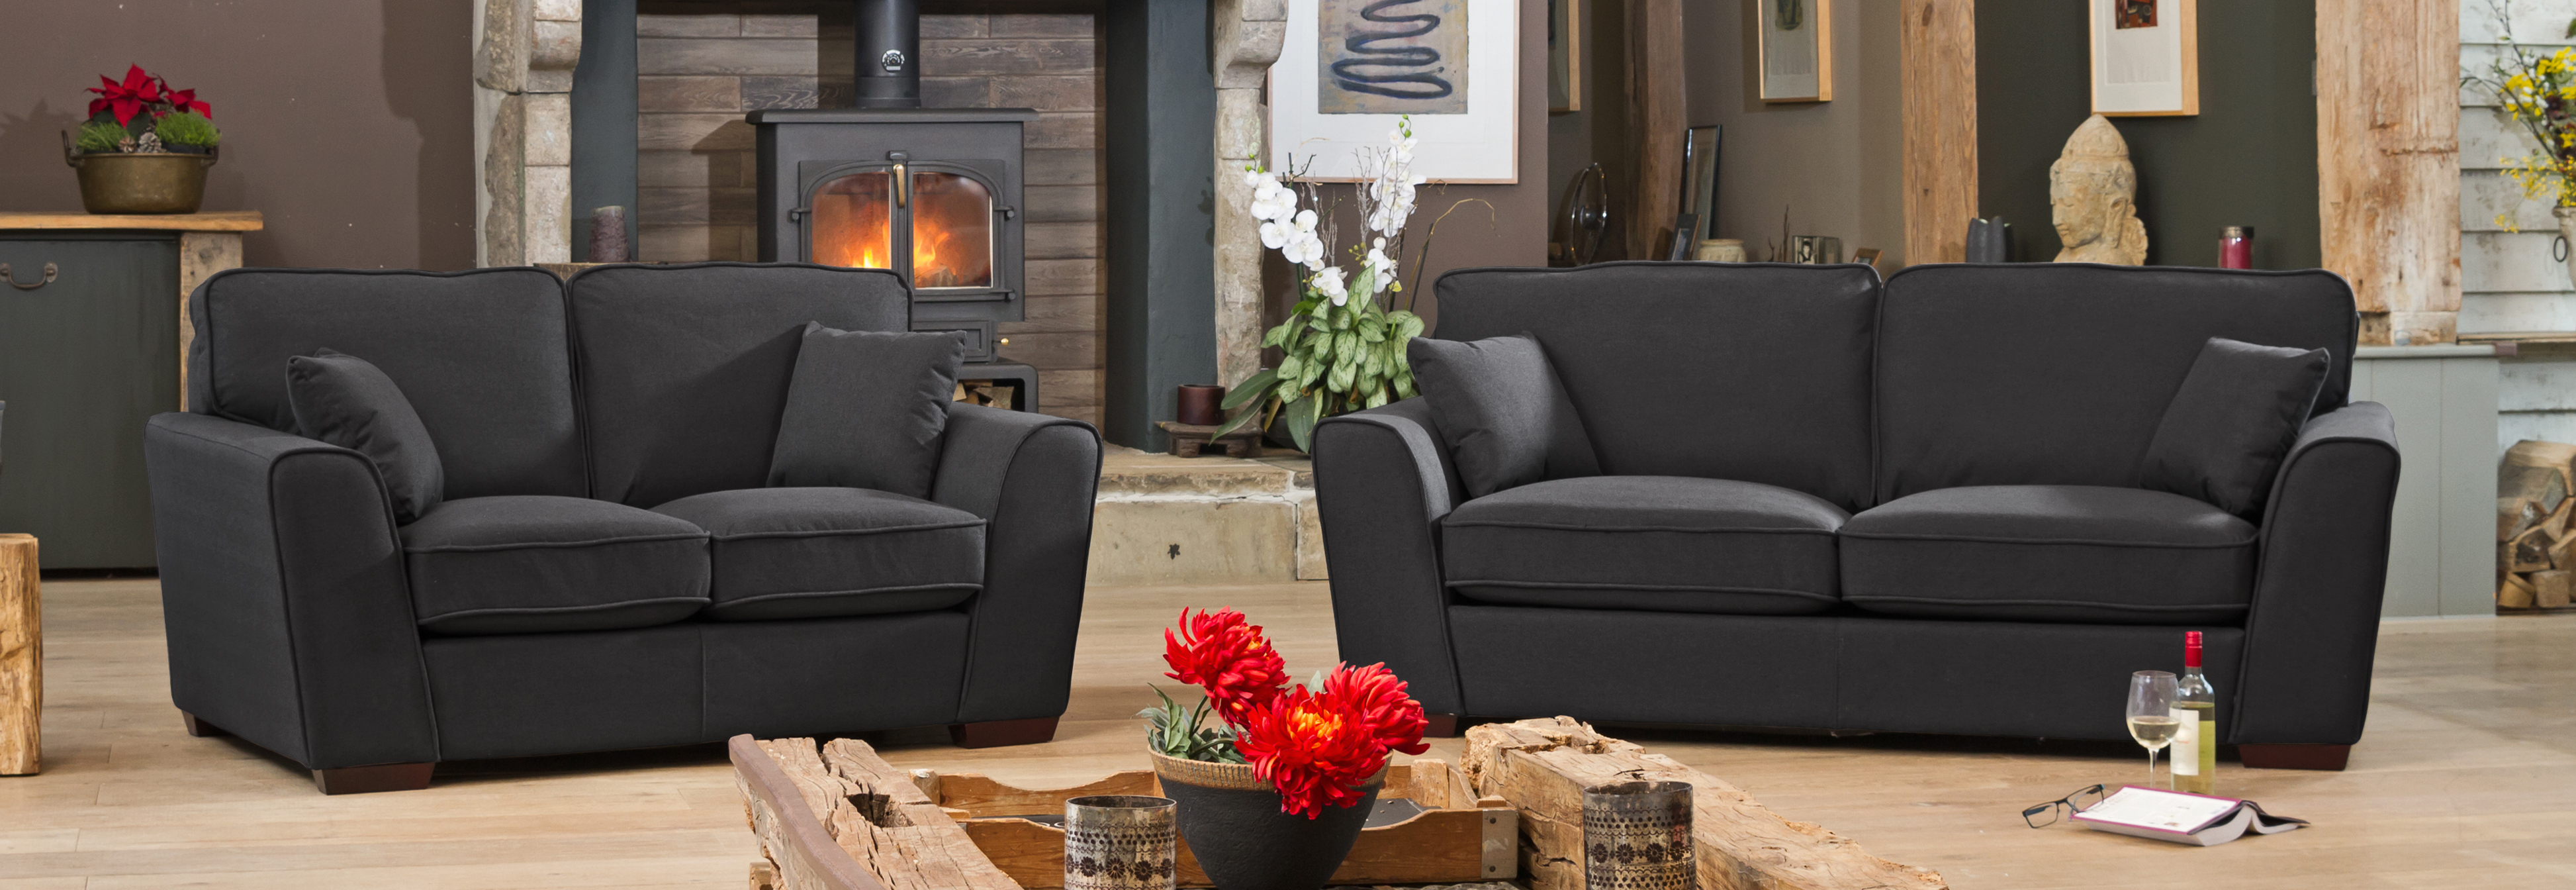 Somerset suite charcoal